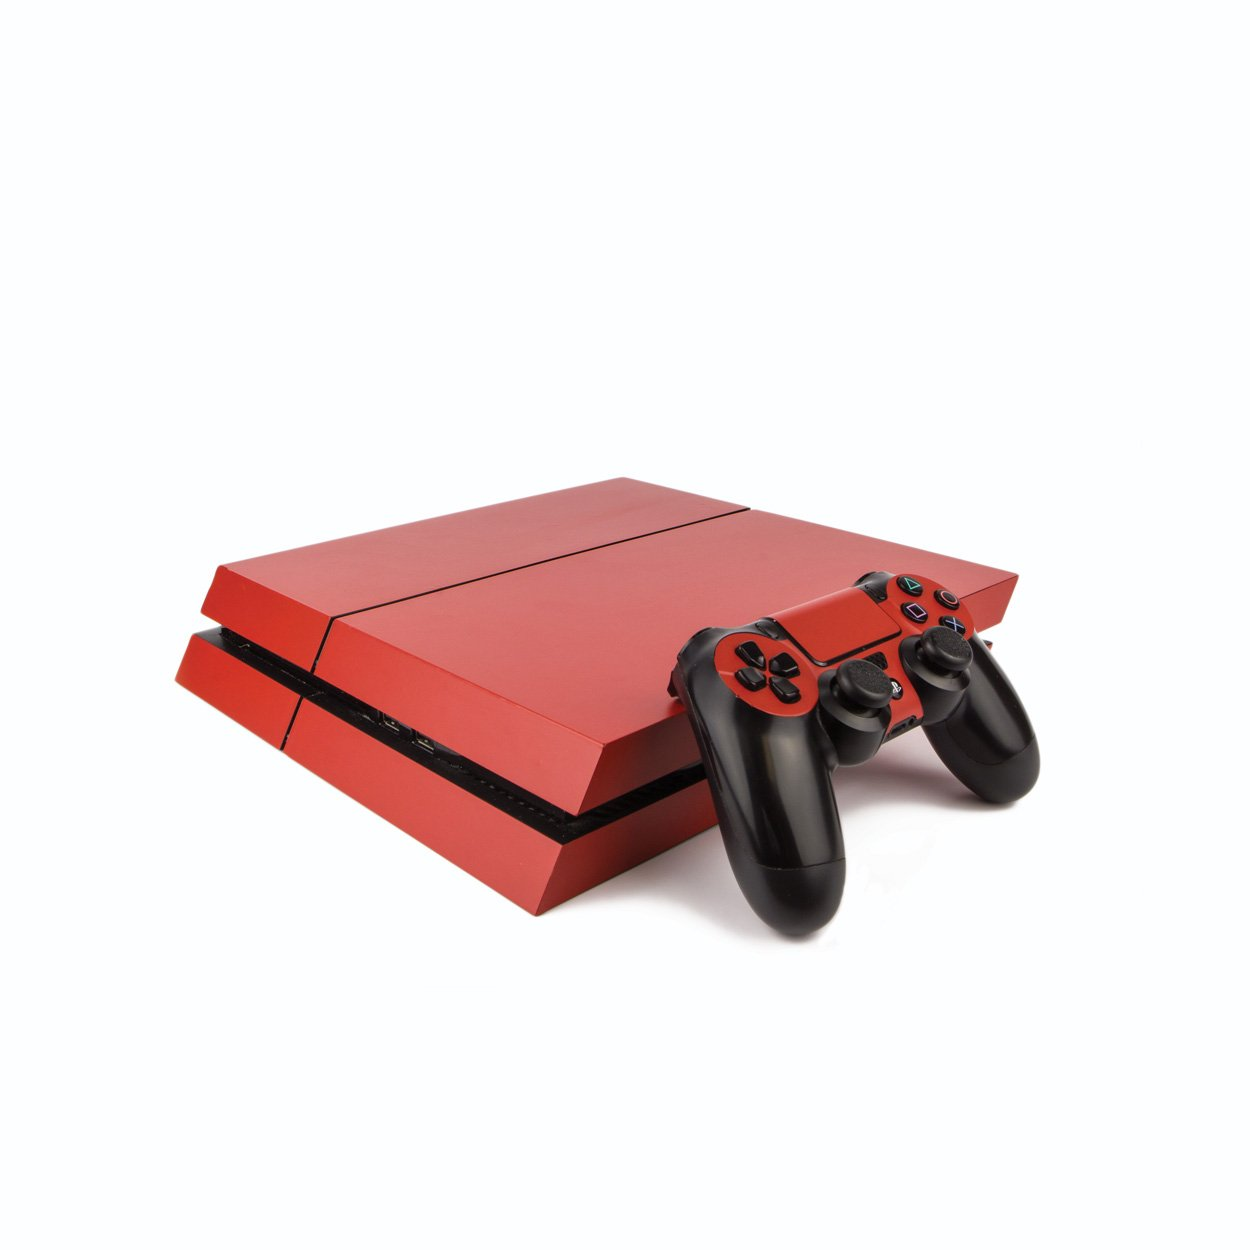 Premium PS4 PlayStation 4 Colourful Vinyl Wrap / Skin / Cover for PS4 Console and PS4 Controllers:Matte Red